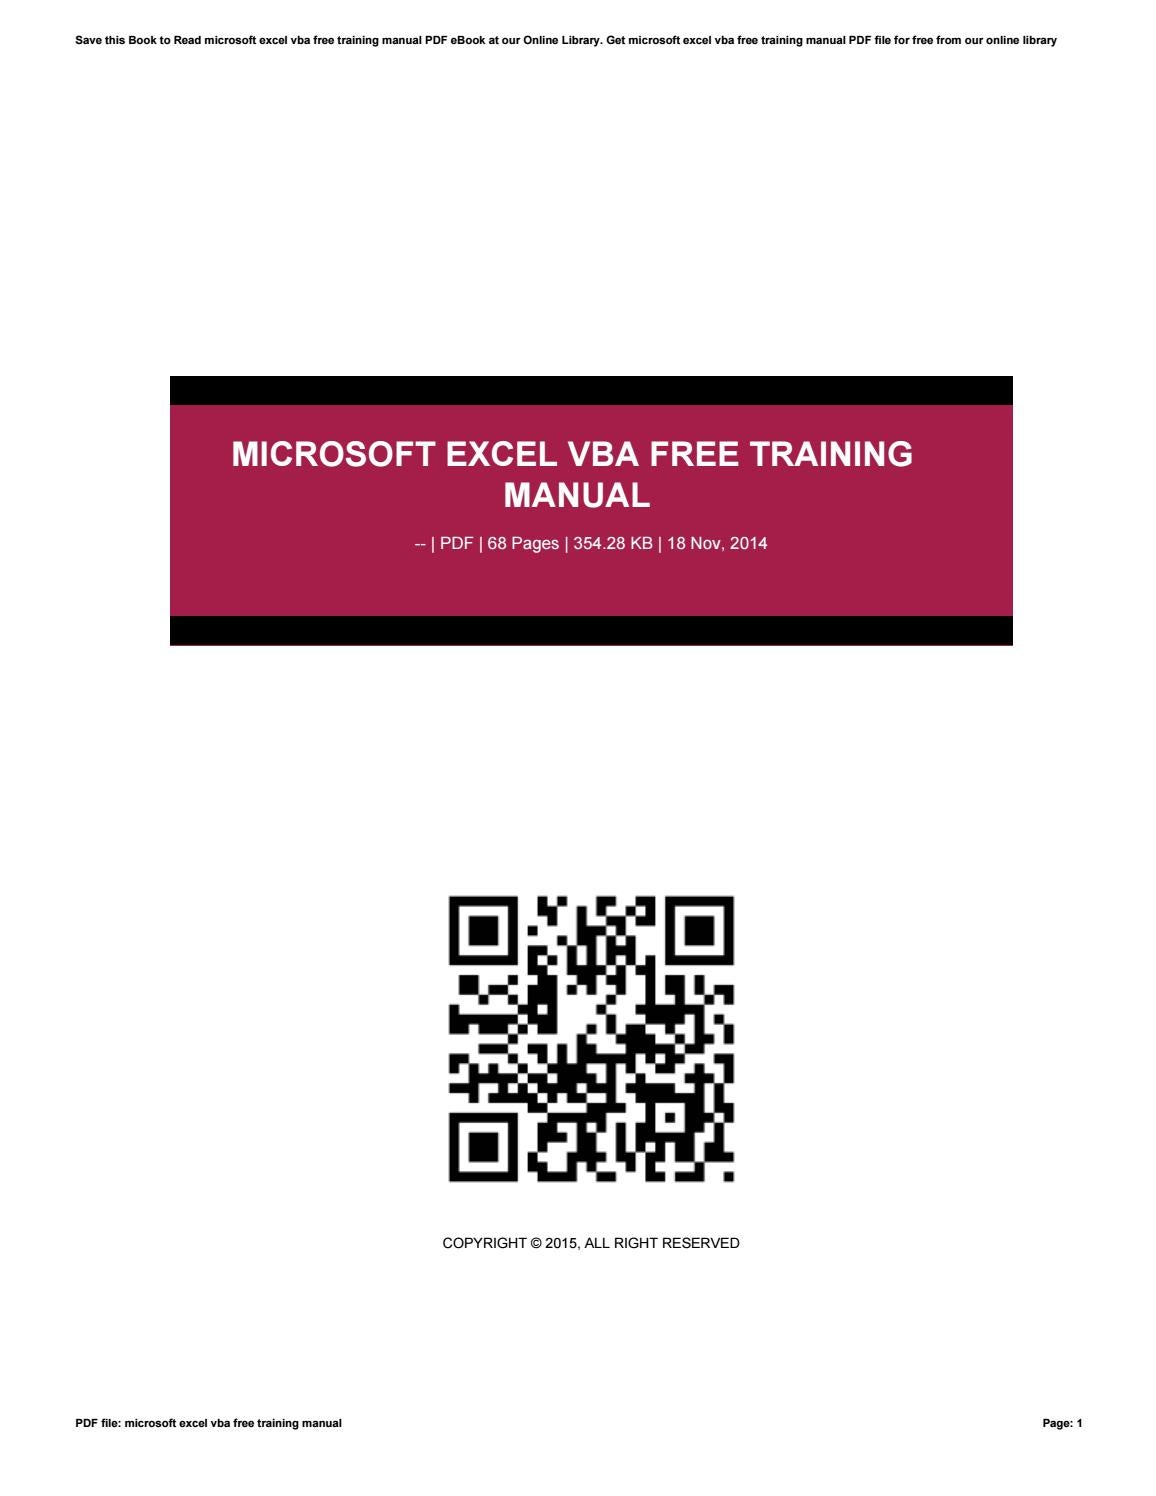 Excel tutorial pdf image collections any tutorial examples microsoft excel vba free training manual by edmondknight1967 issuu baditri image collections baditri Gallery